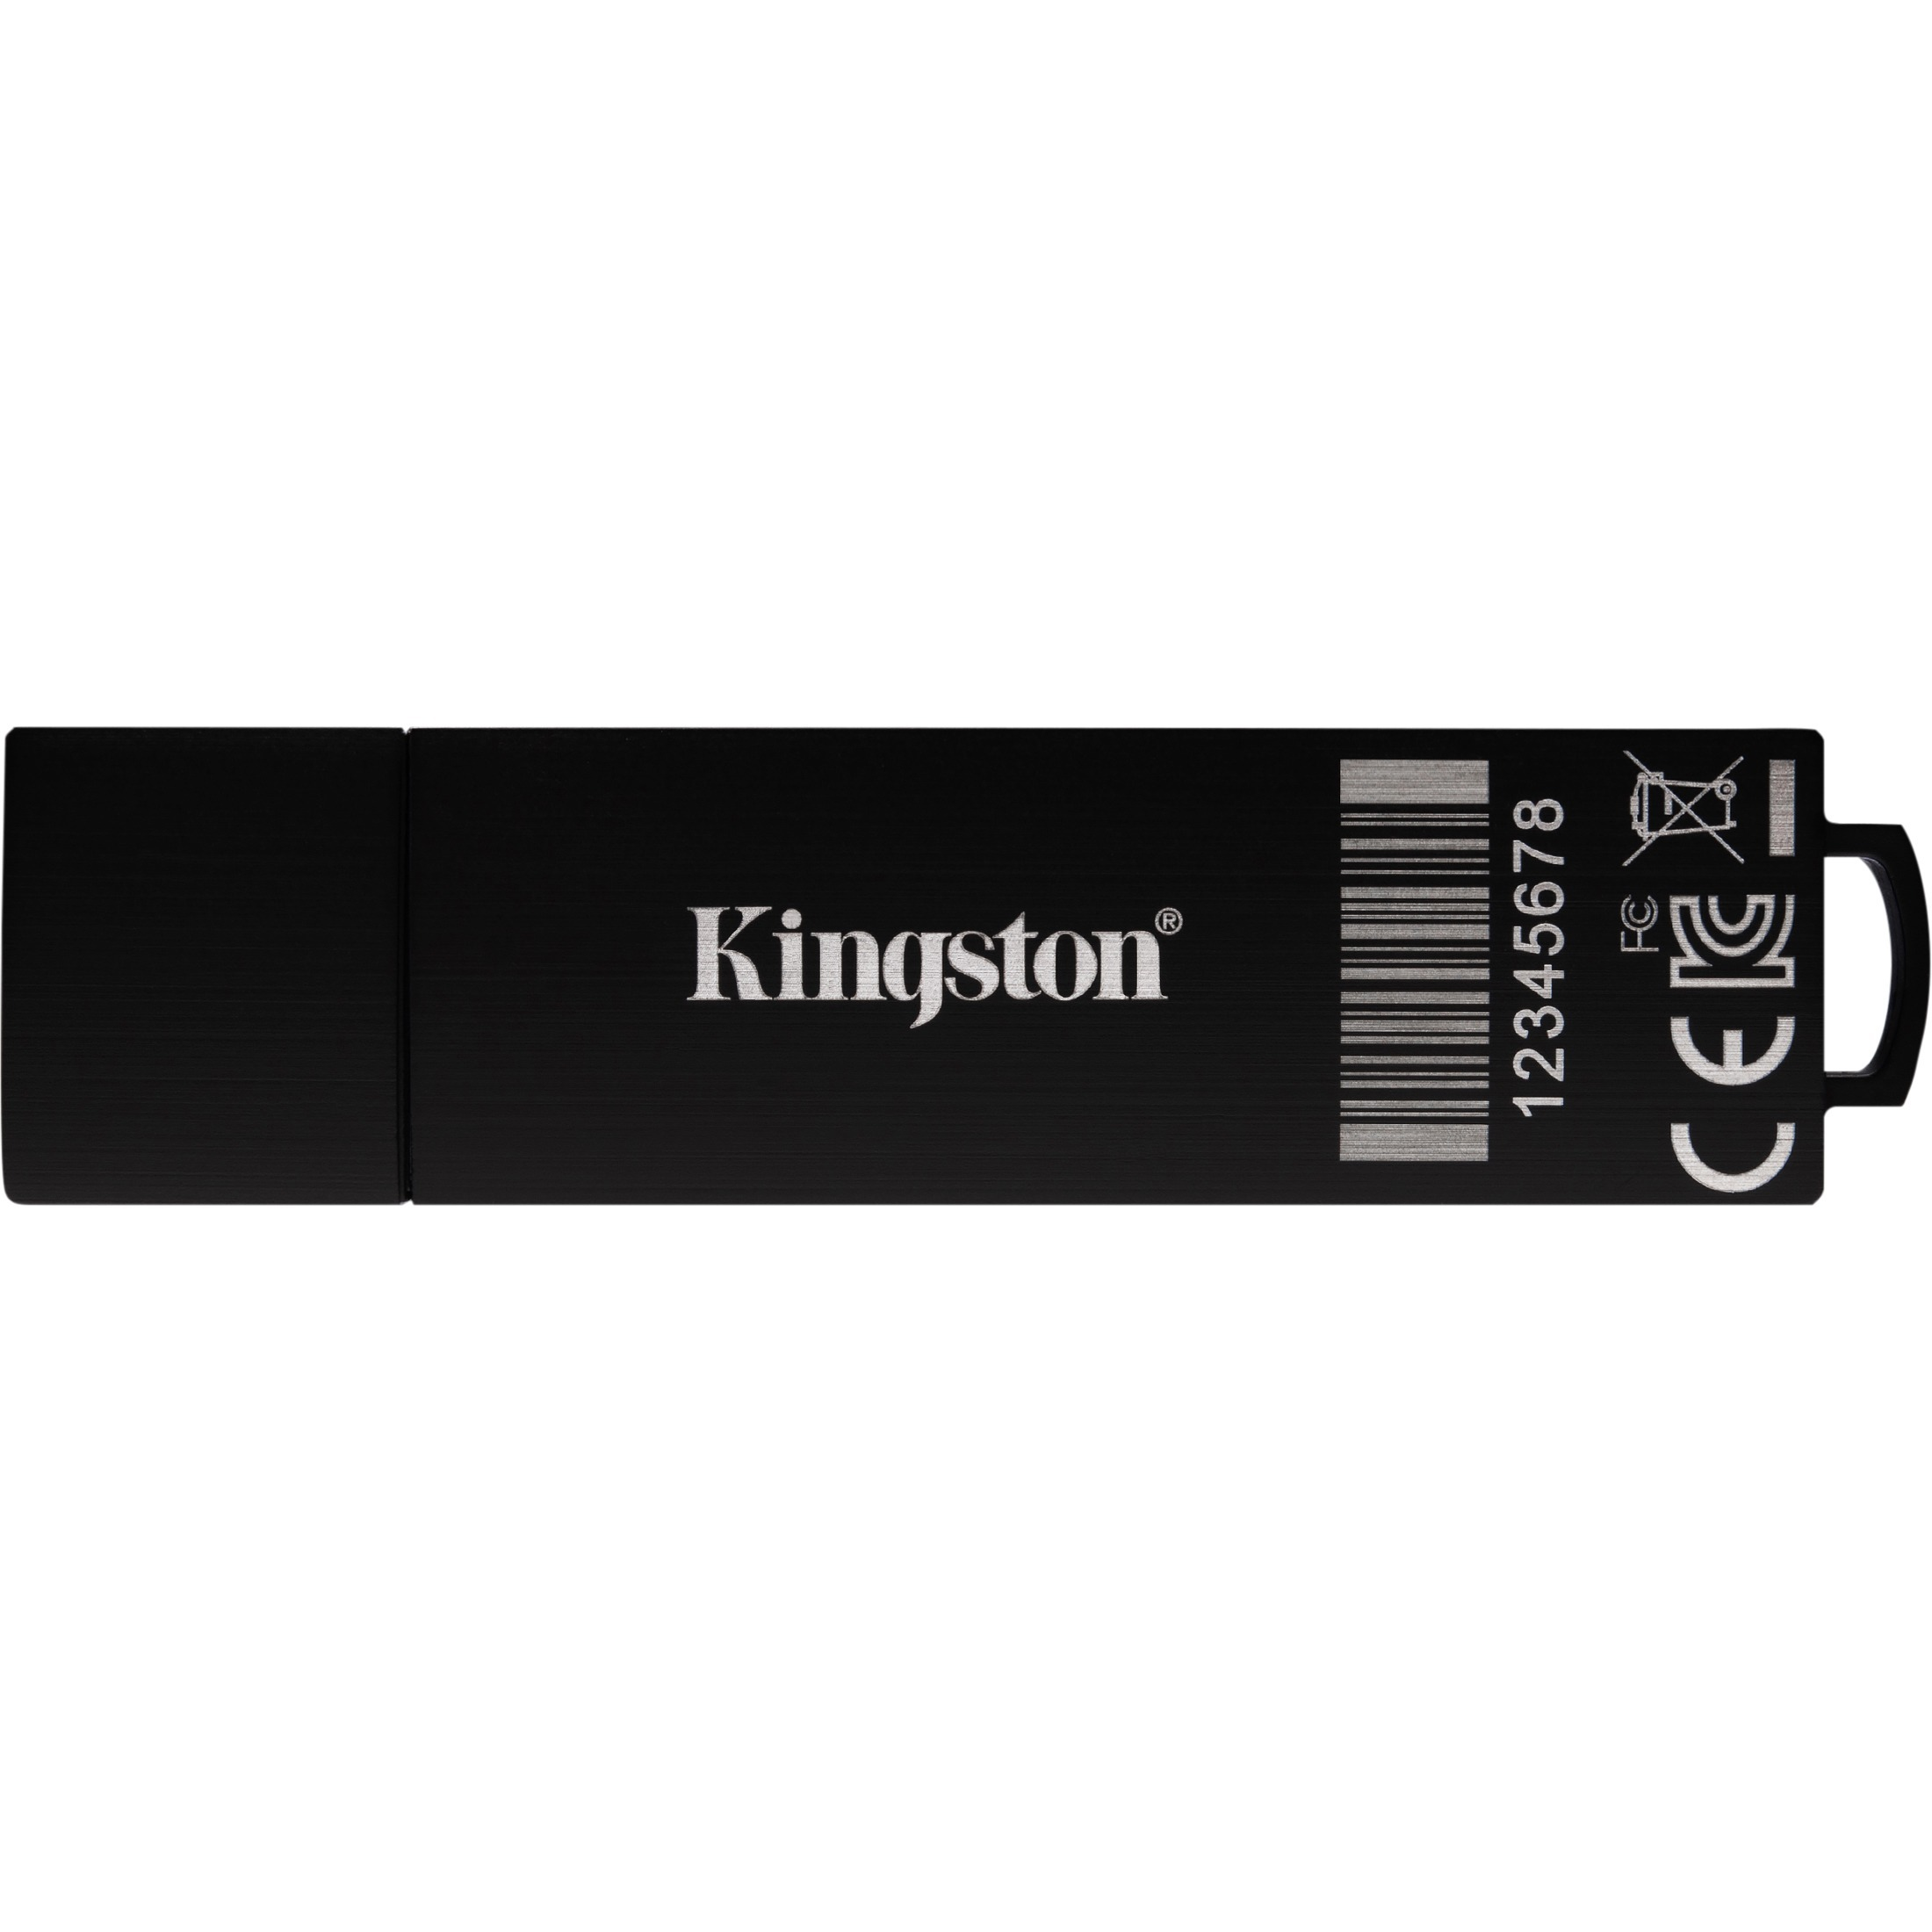 Kingston IronKey D300 D300S 8 GB USB 3.1 Flash Drive - Anthracite - TAA Compliant